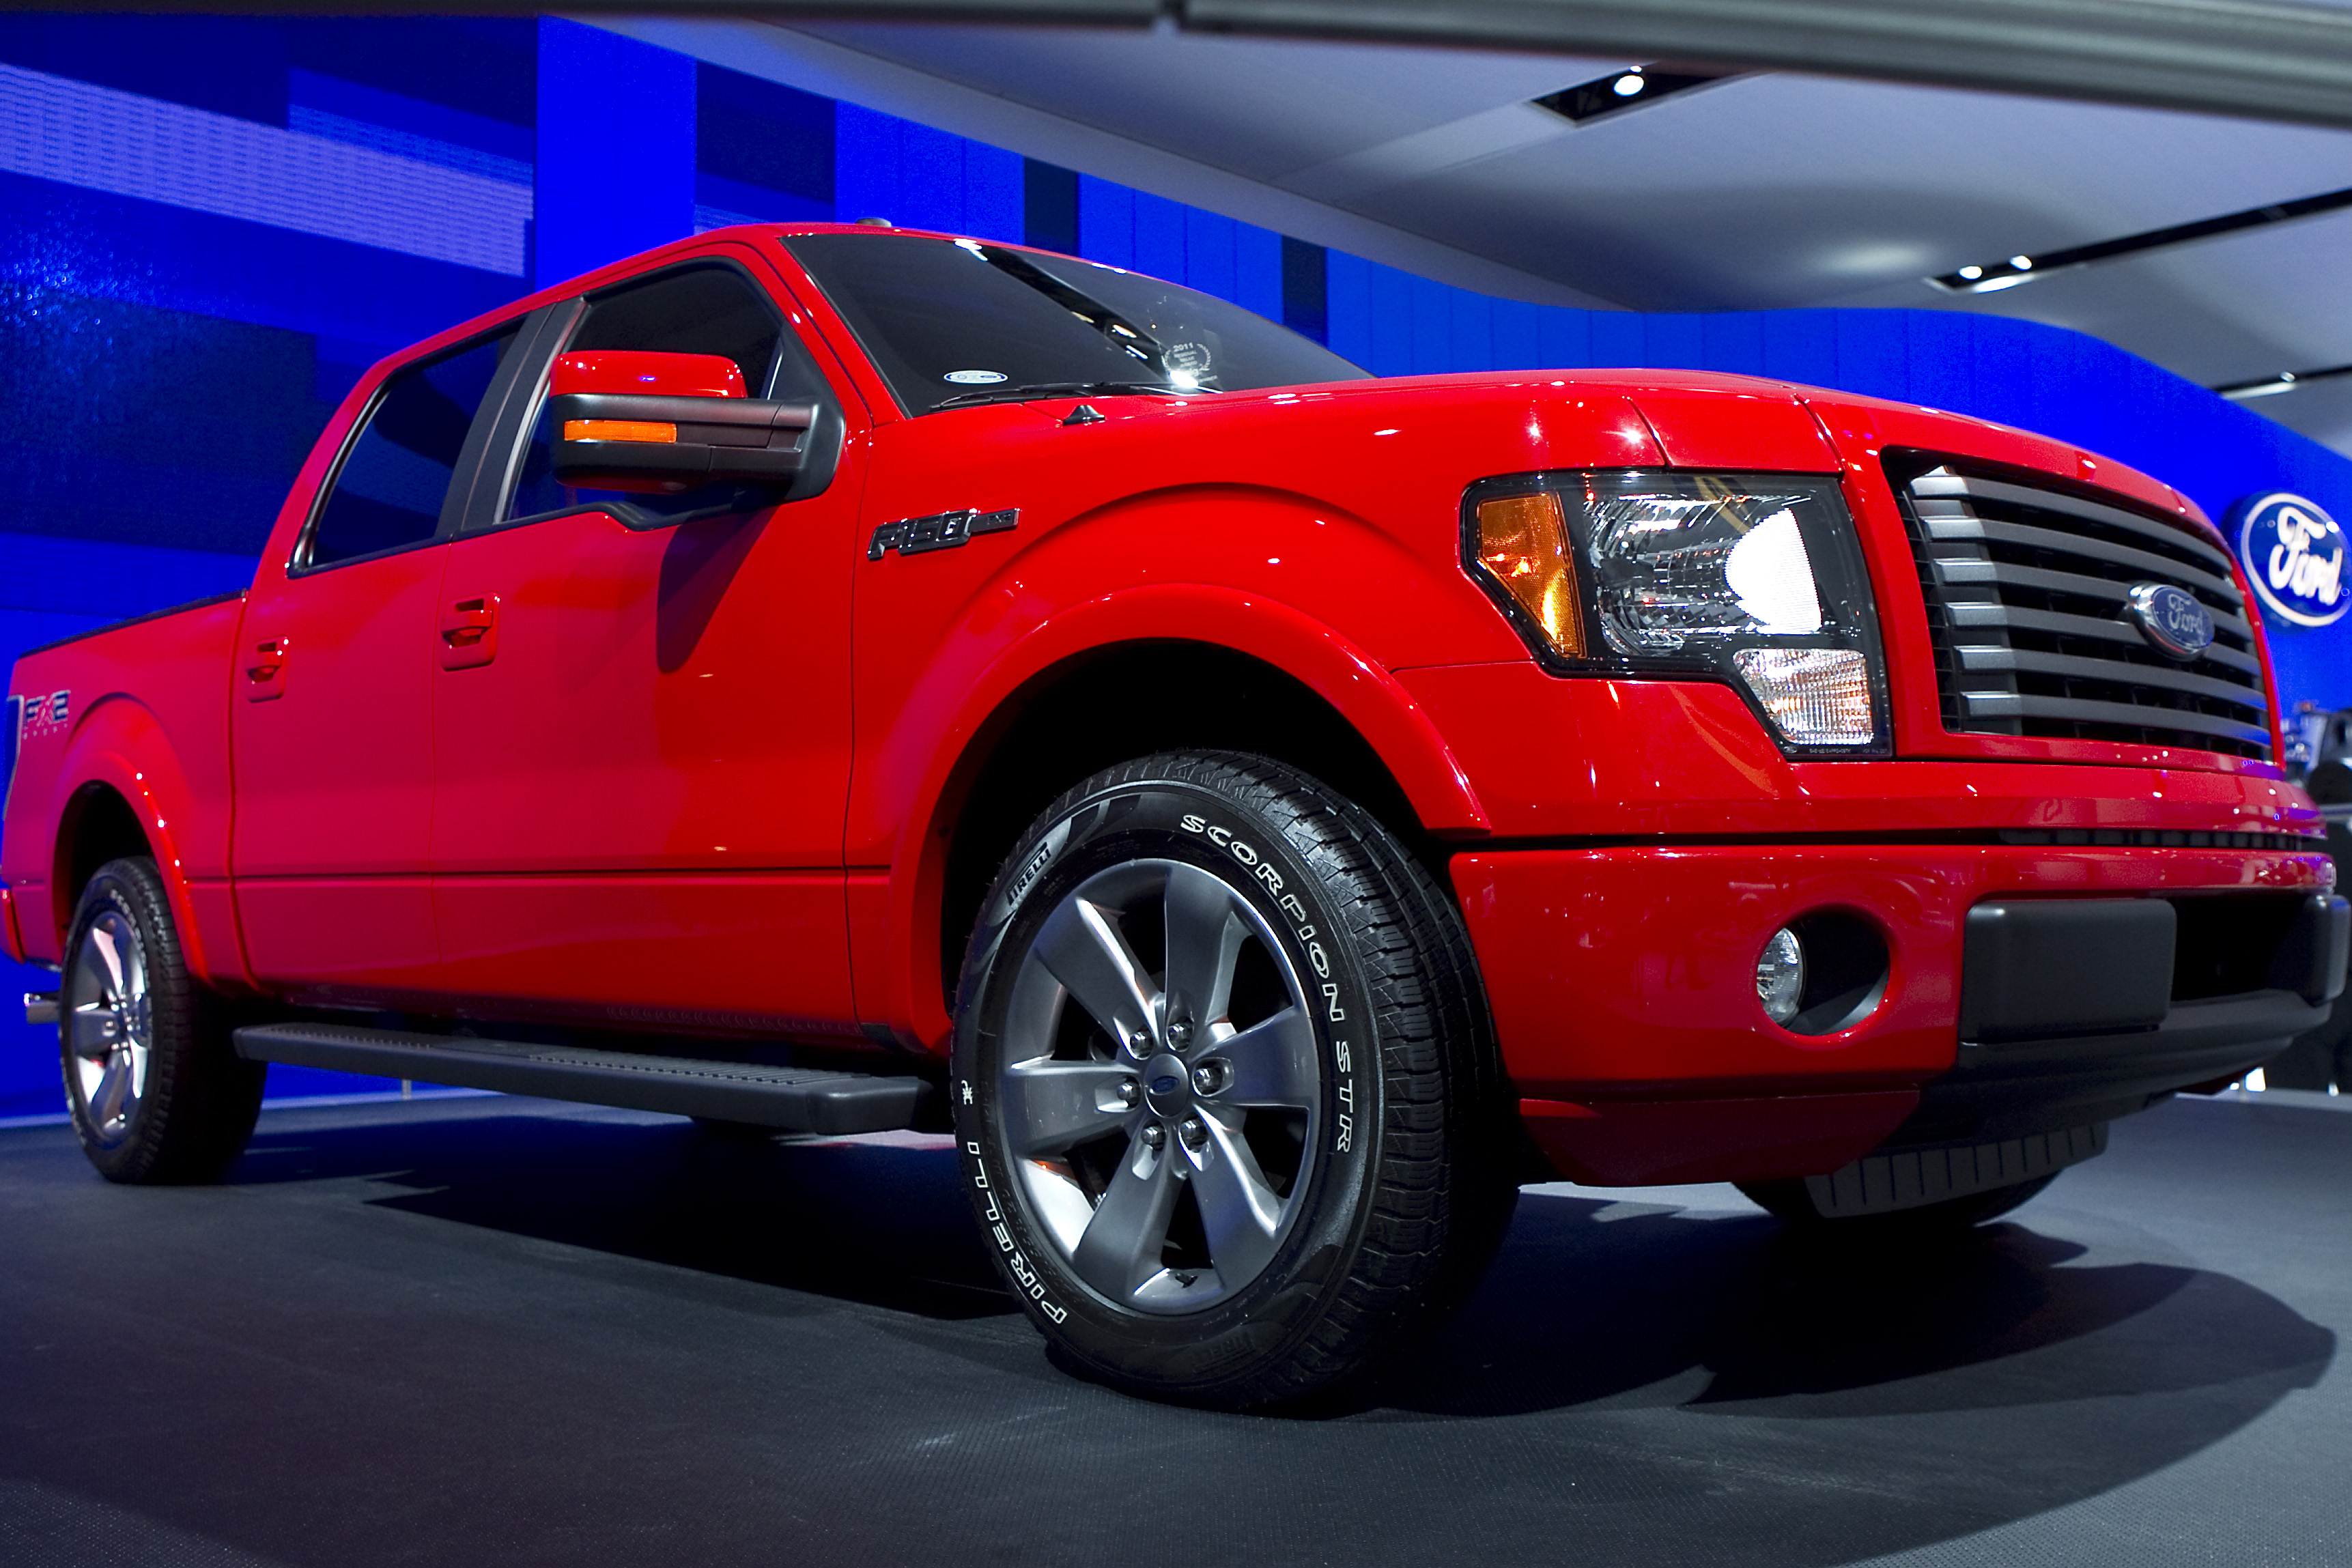 Detroit Auto Show Previews Newest Car Models From Around The World